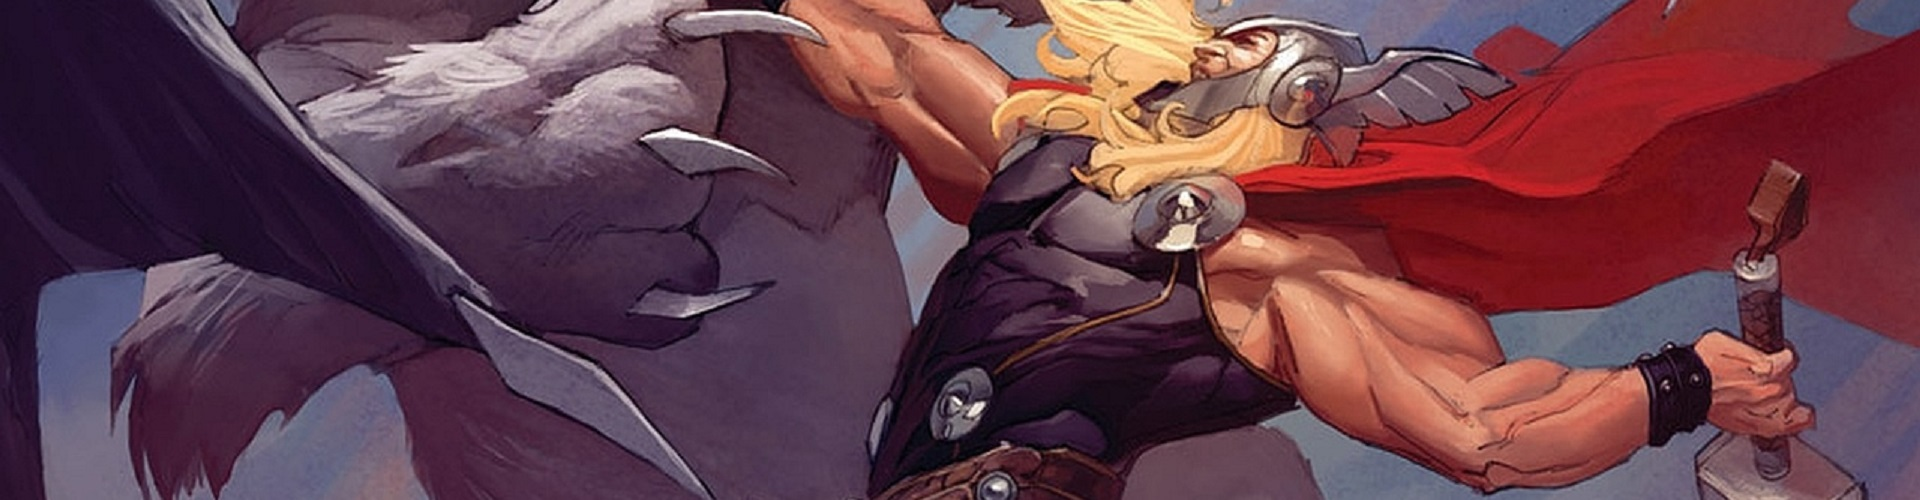 on sale today thor